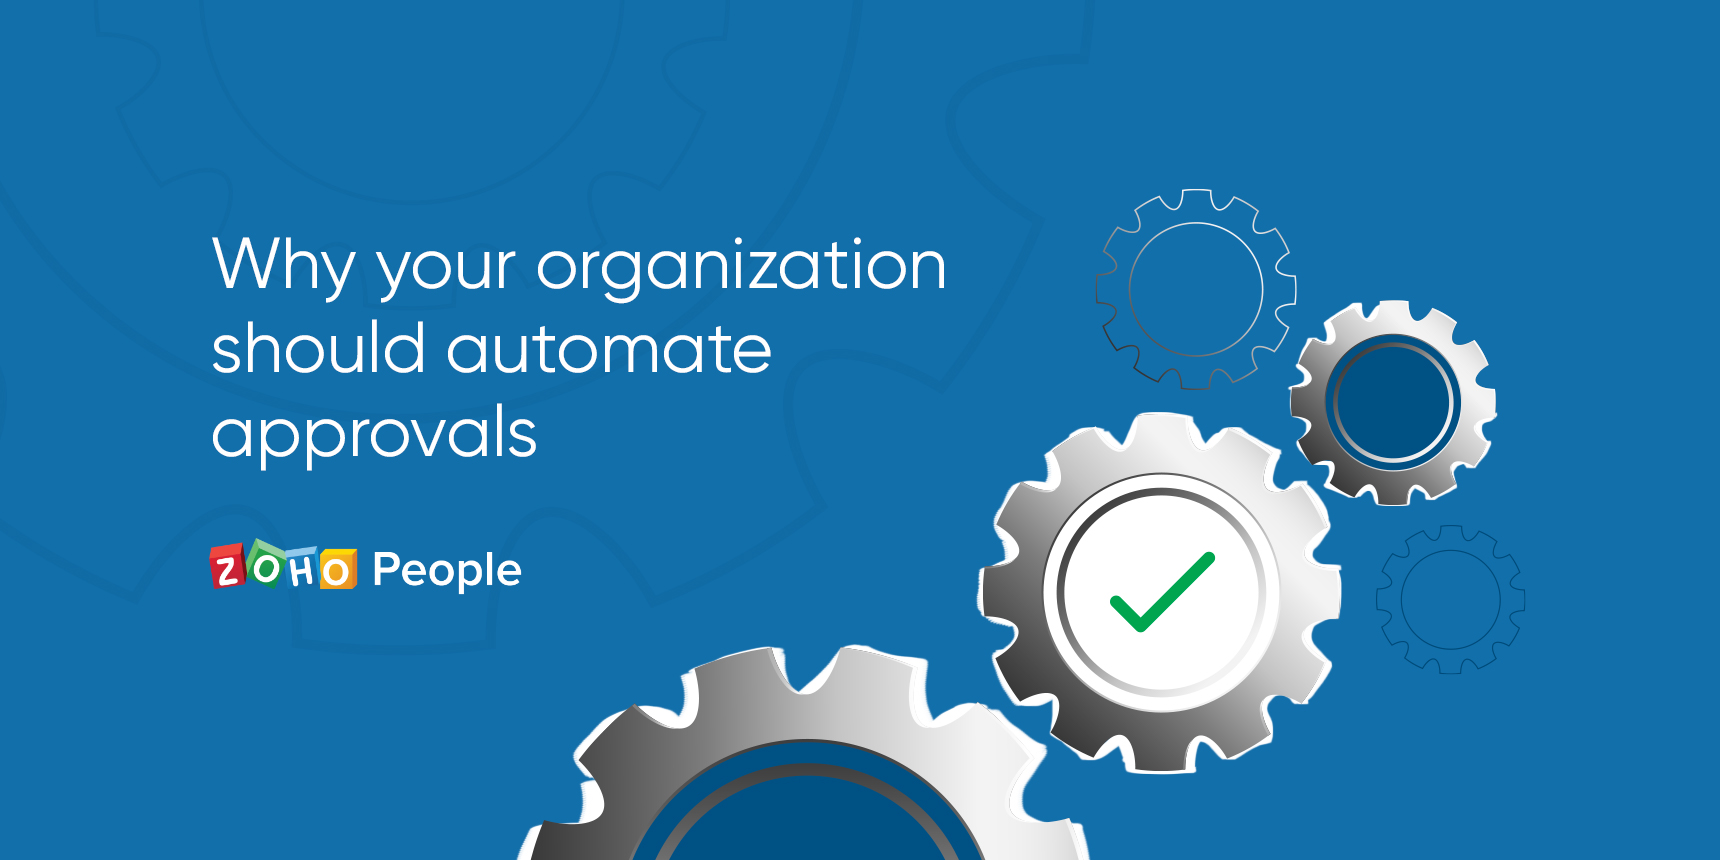 Benefits of automating HR approvals